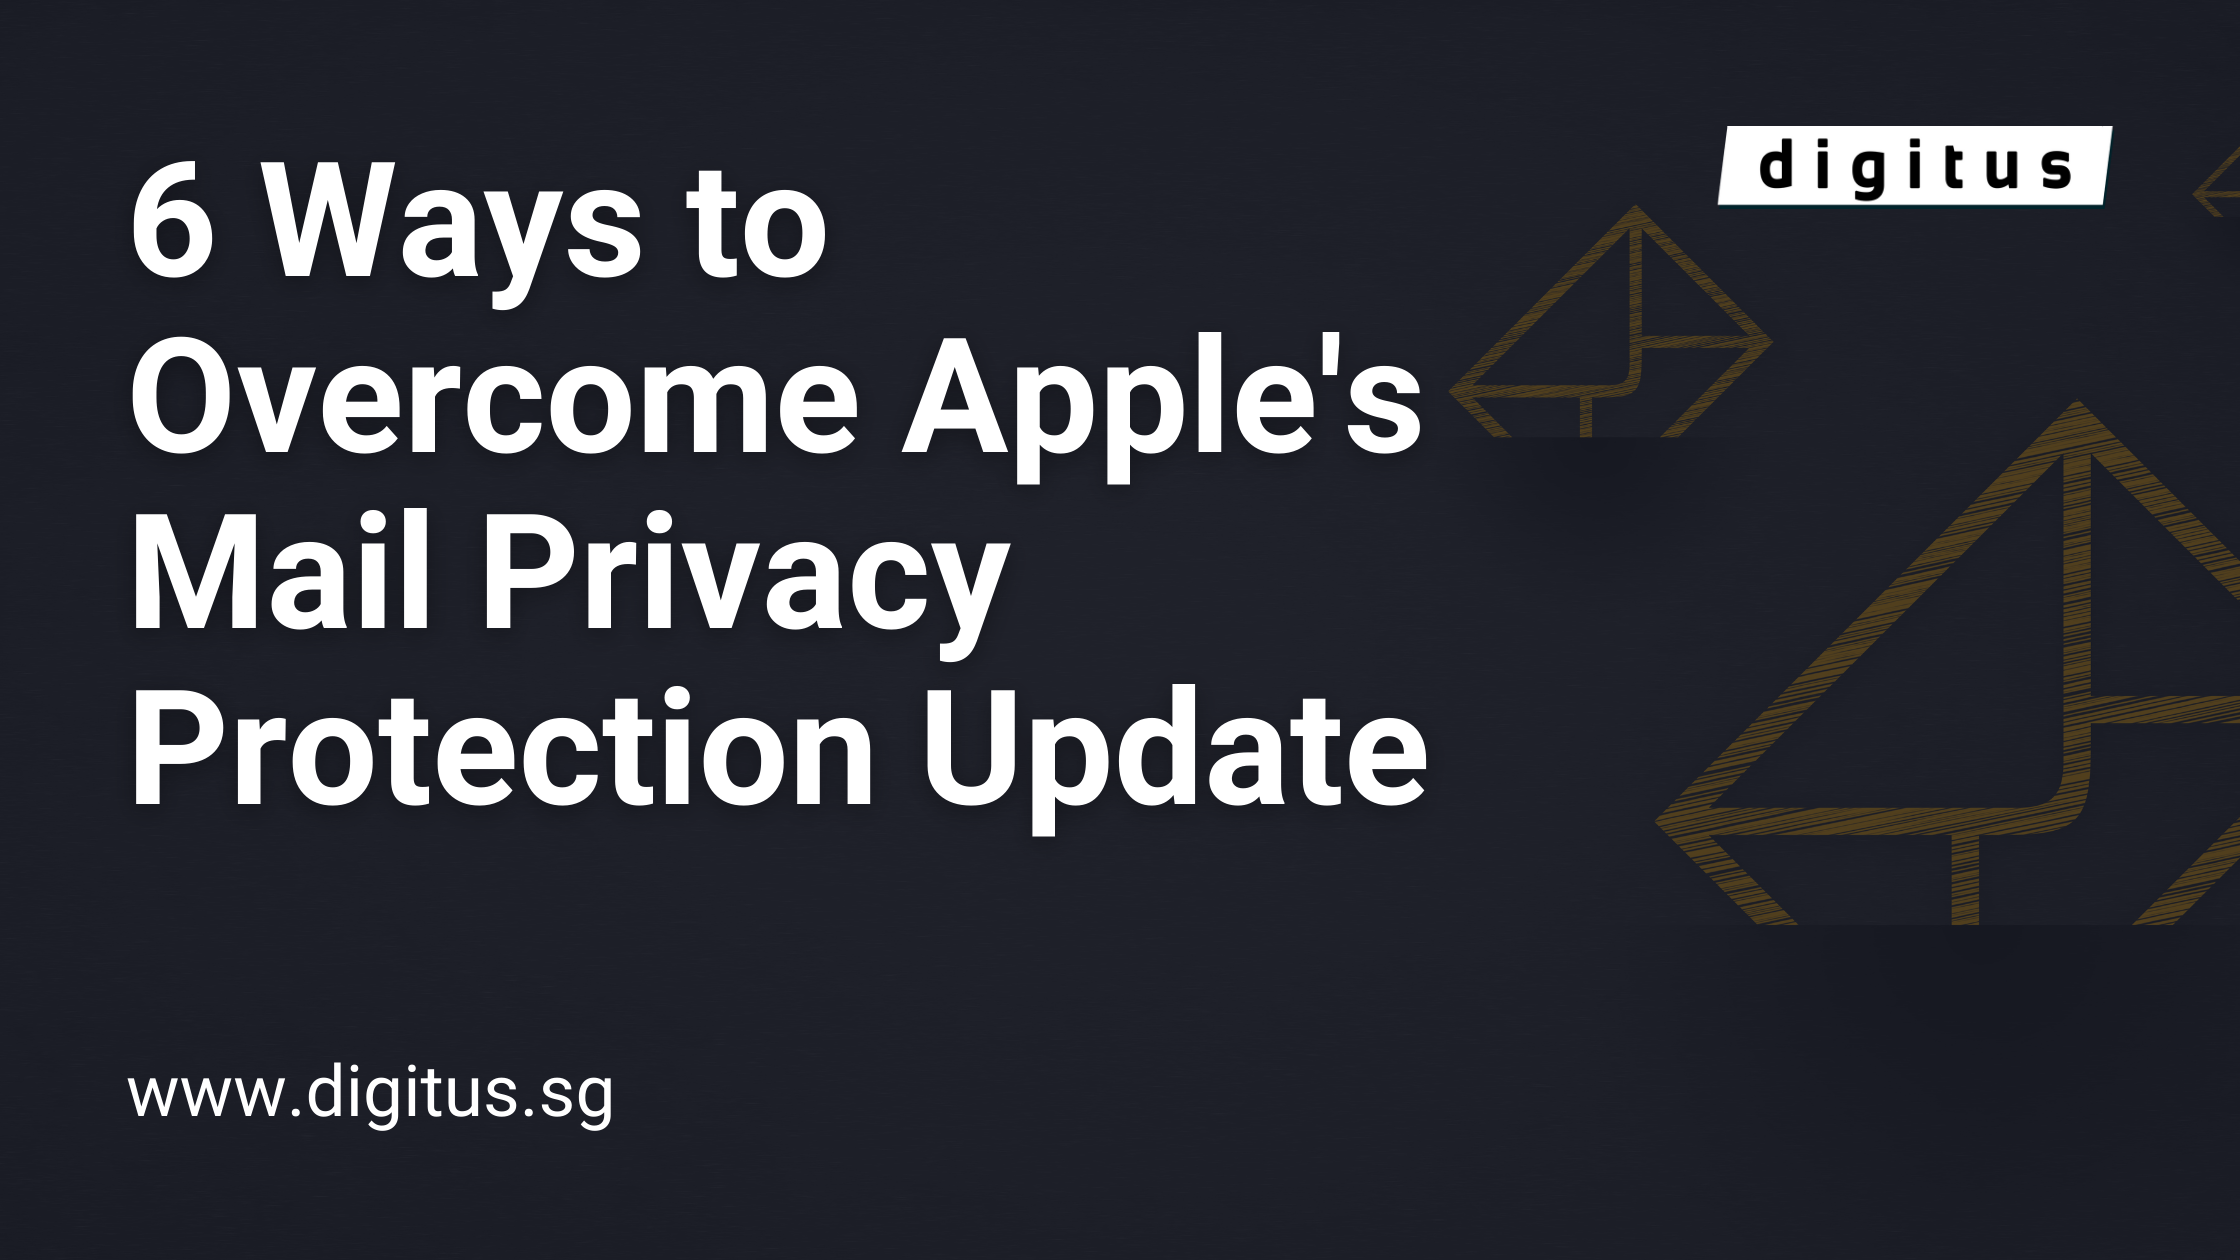 6 Ways to Overcome Apple's Mail Privacy Protection Update